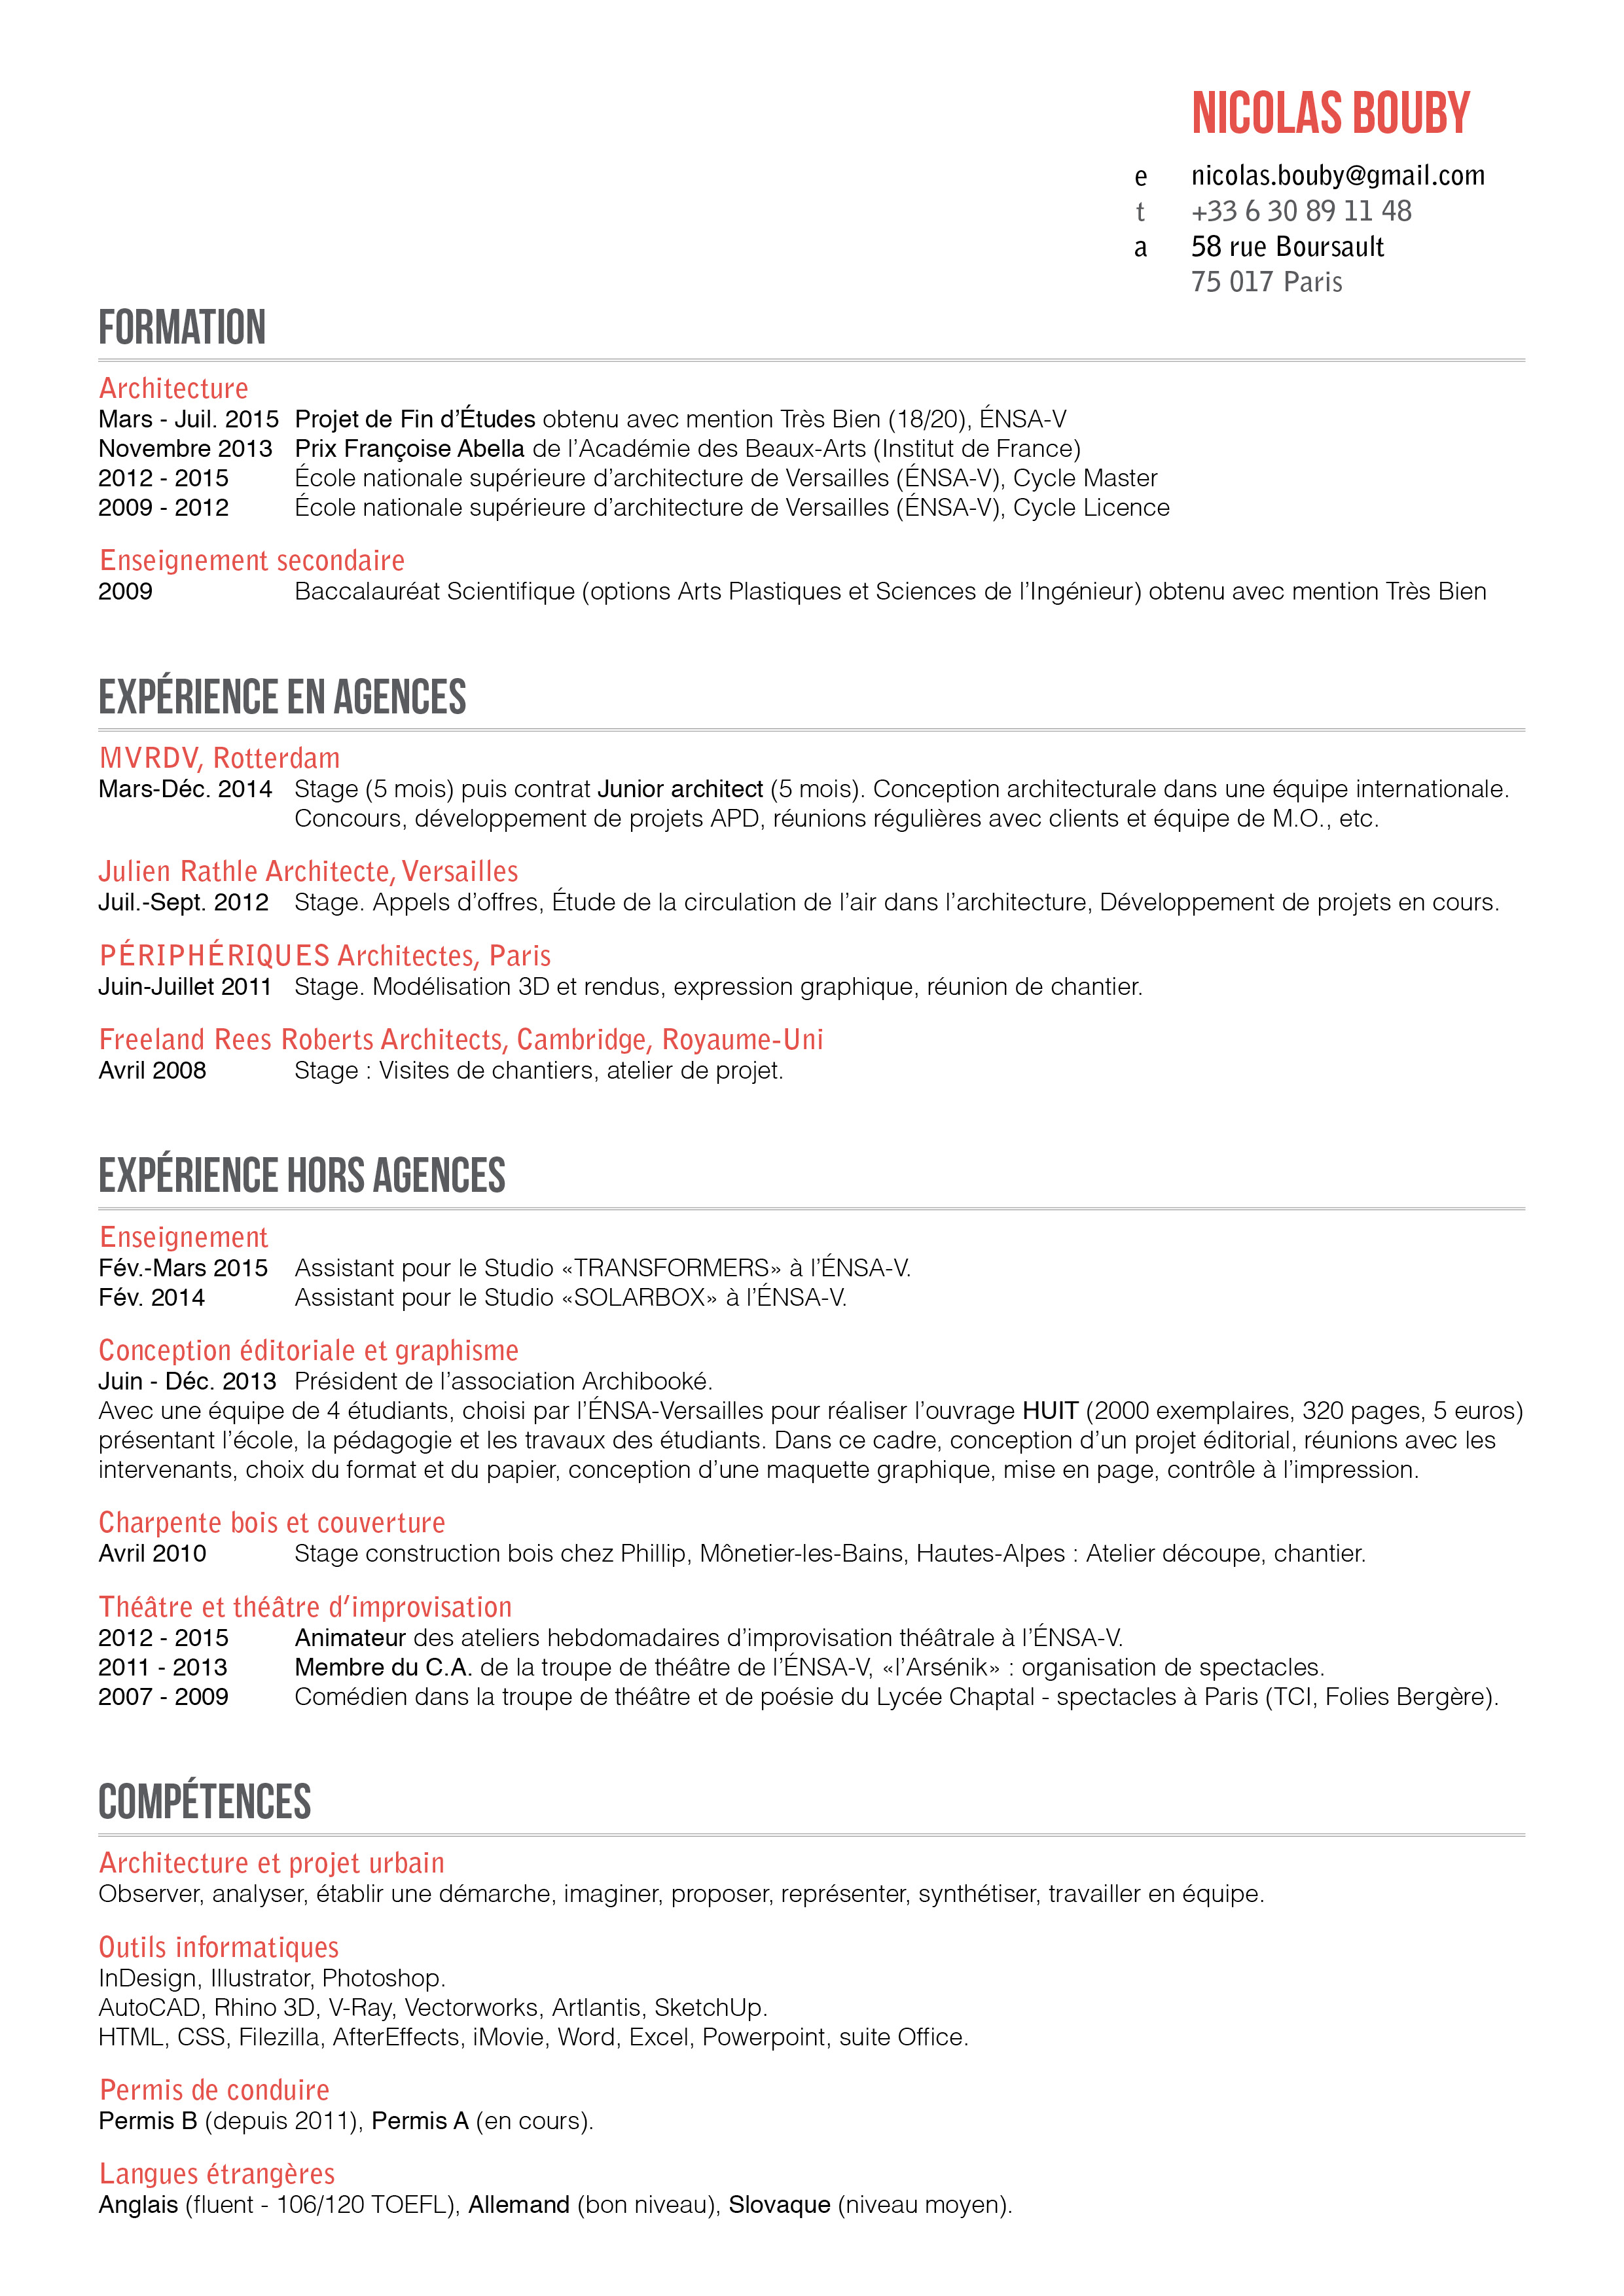 nicolas bouby cv - Curriculum Vitae French